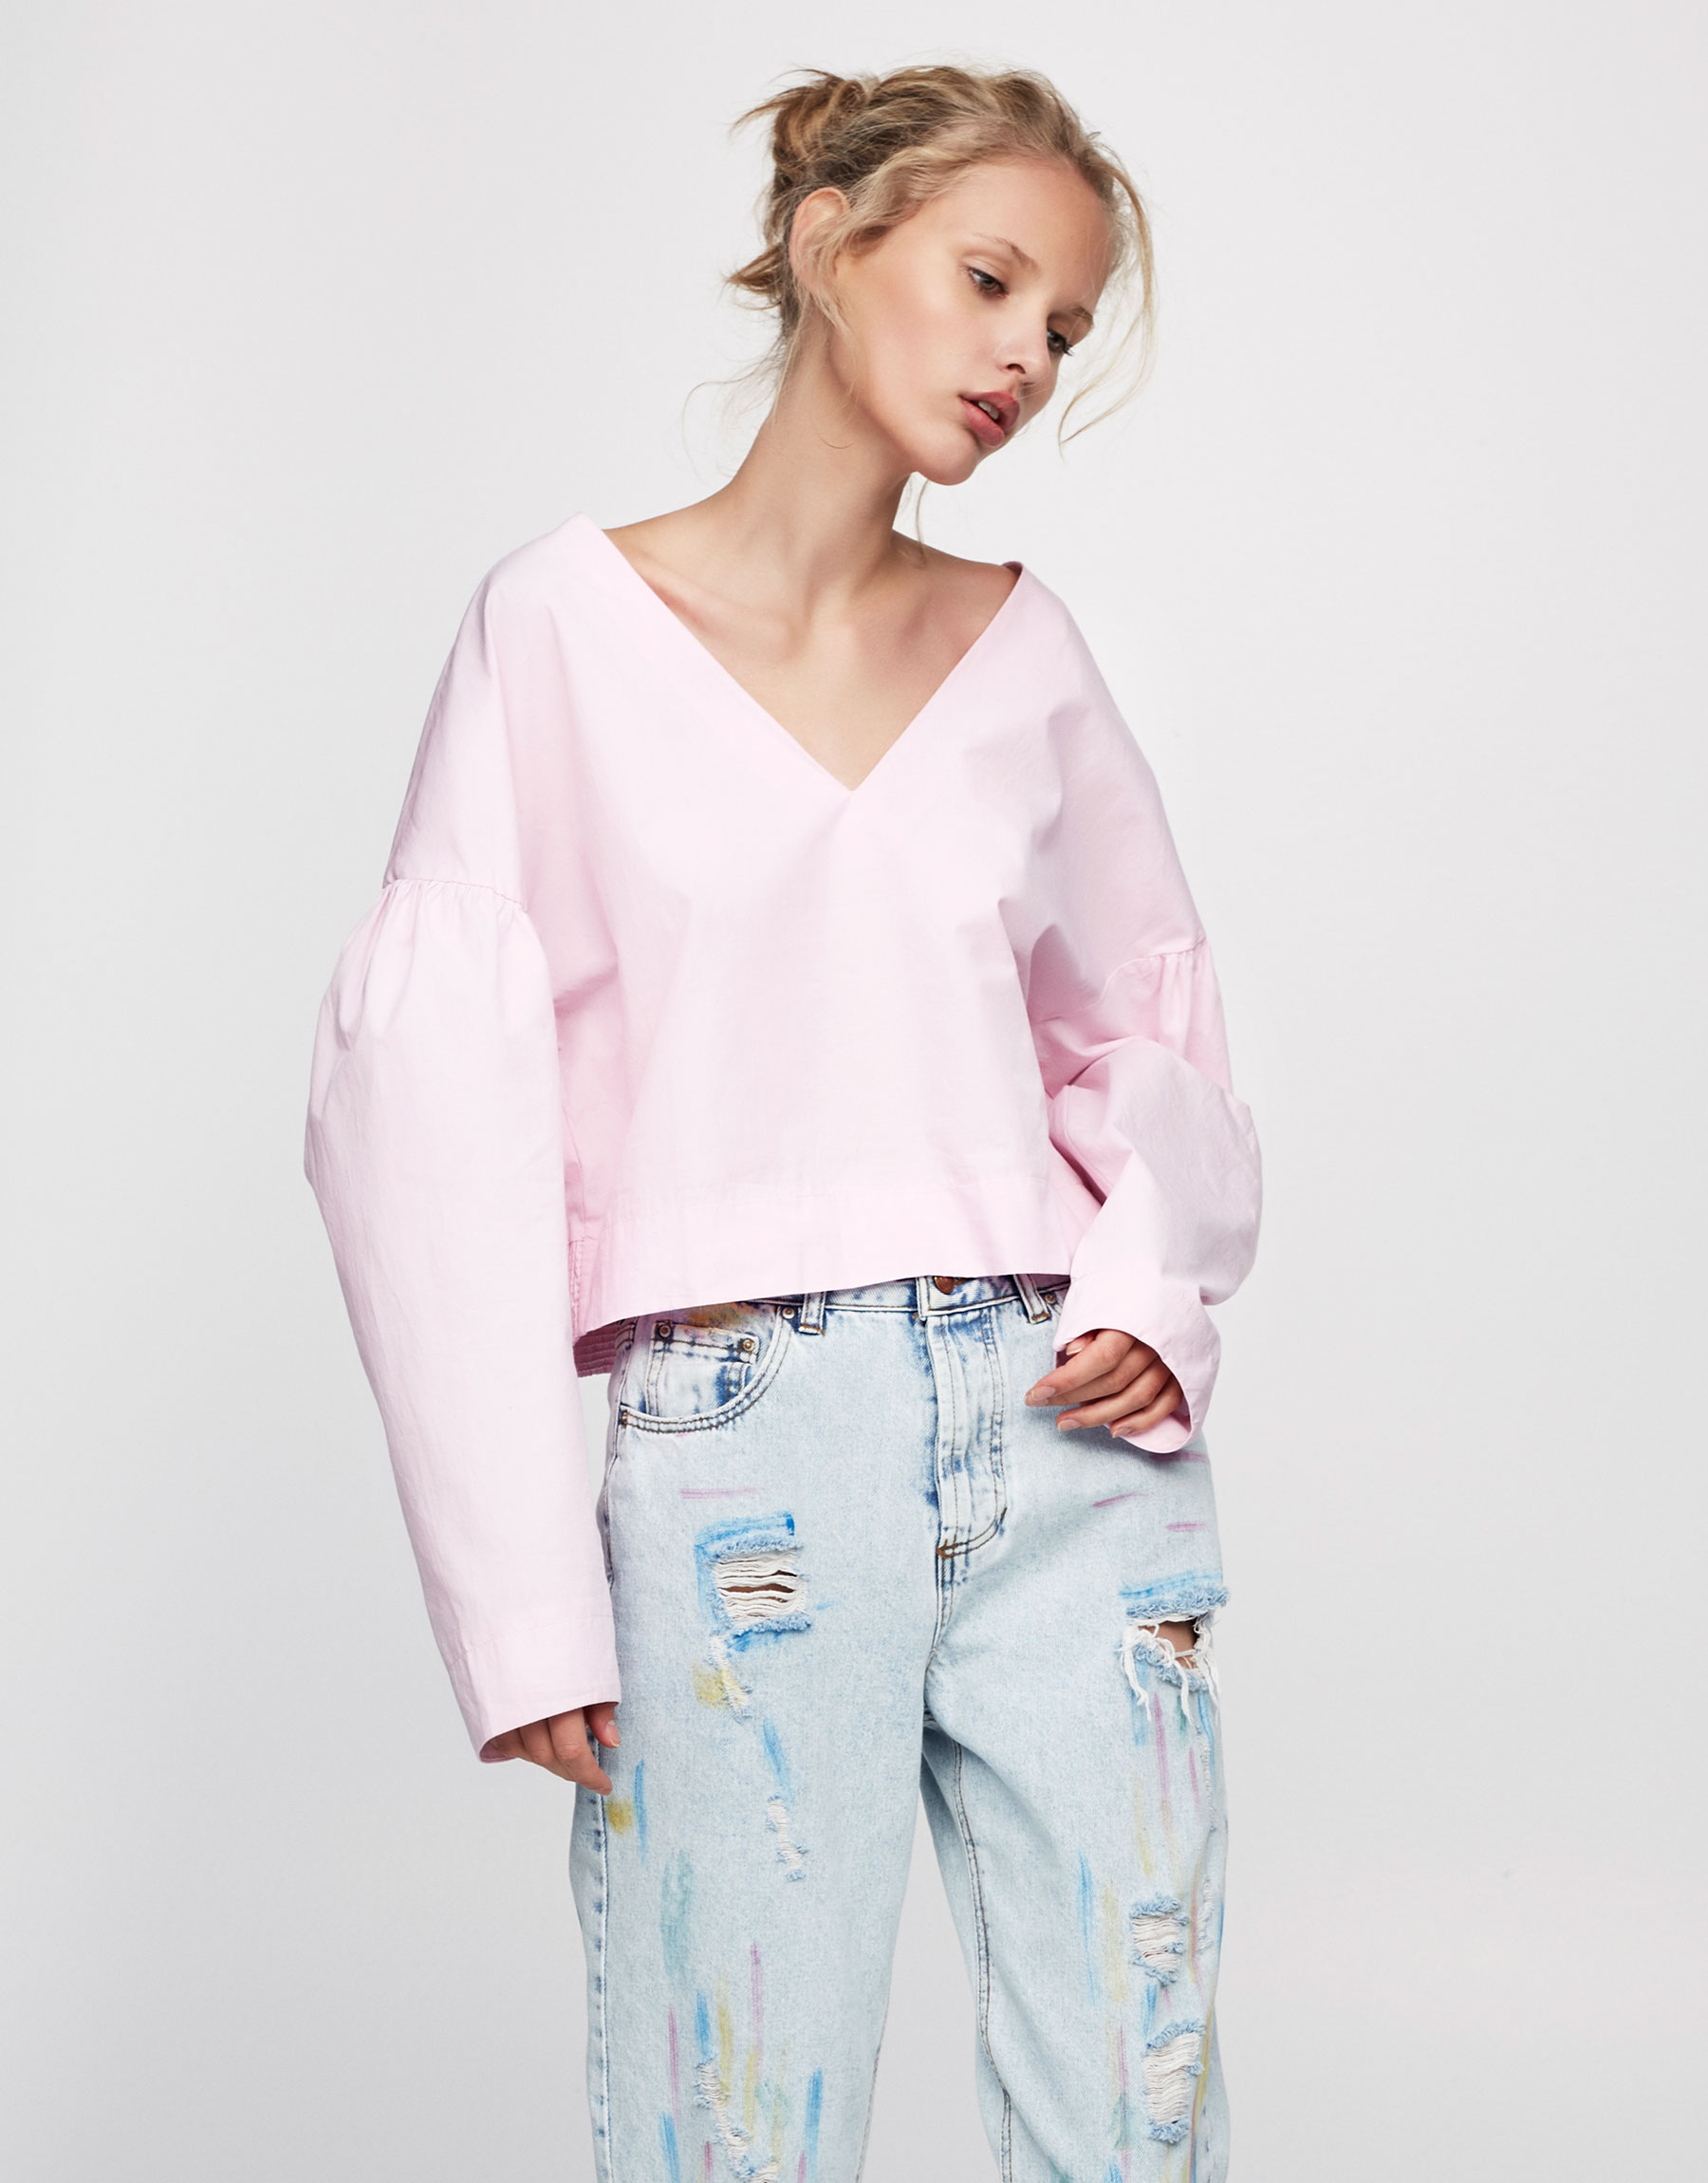 Cropped shirt with puffy sleeves